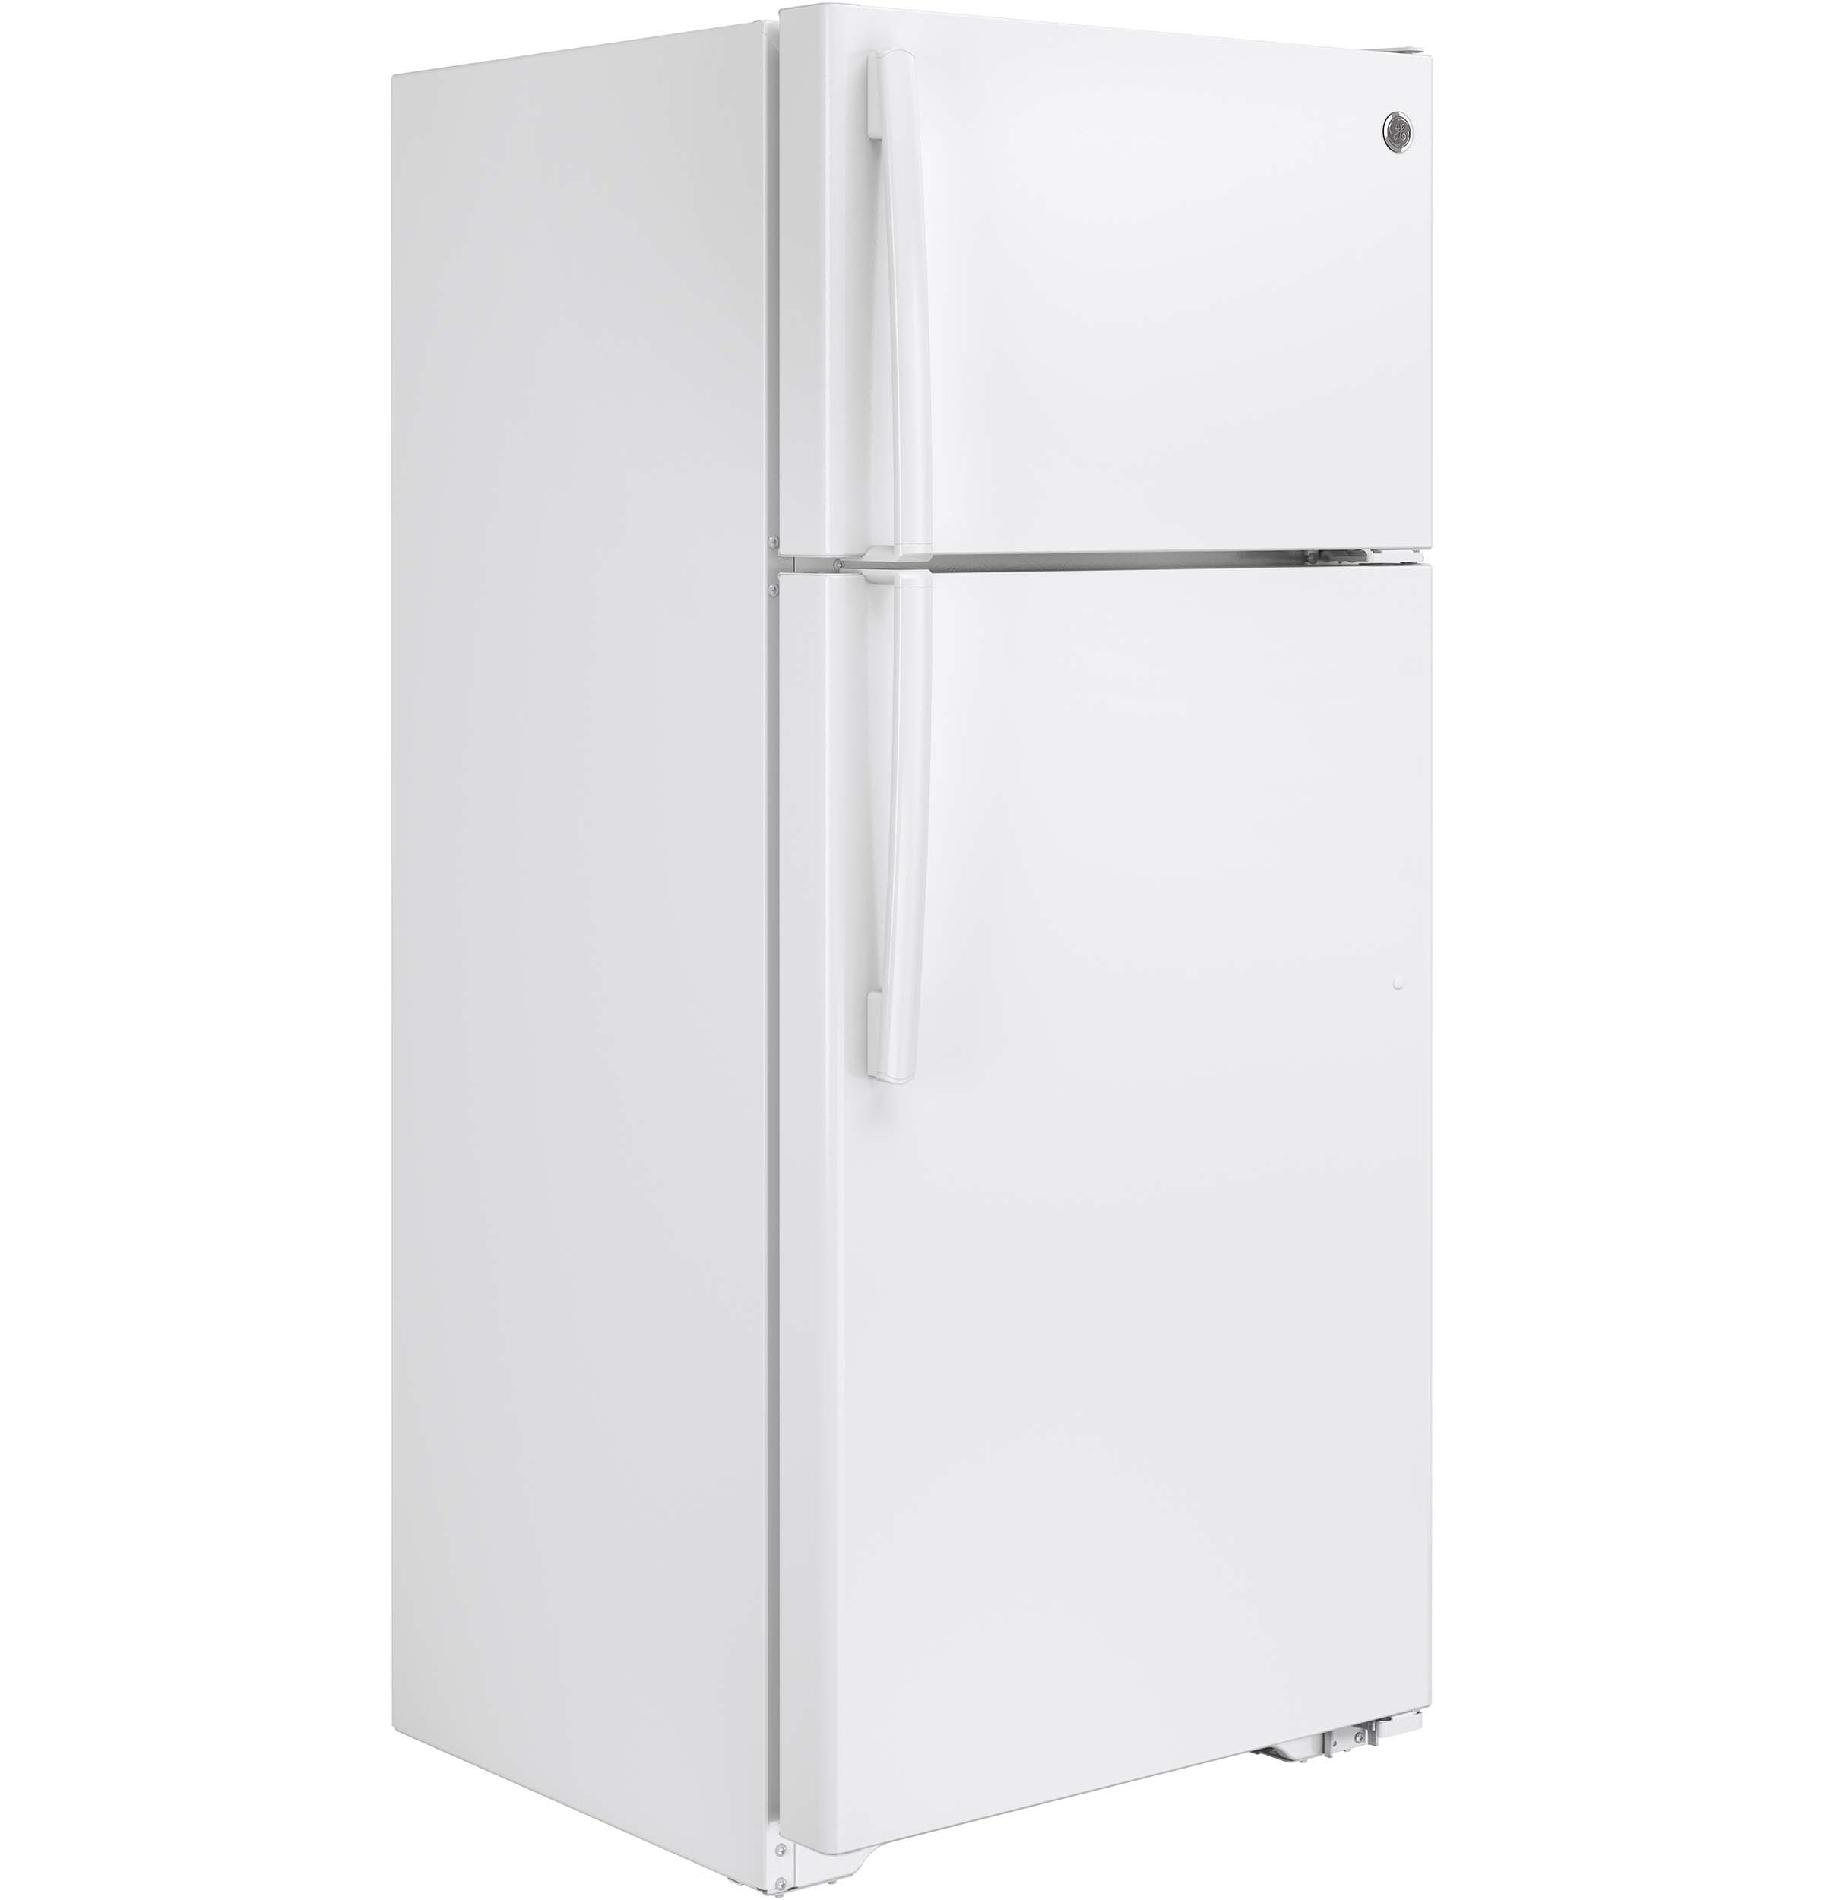 GE Appliances GTS16DTHWW 15.5 Cu. Ft. Top-Freezer Refrigerator - White